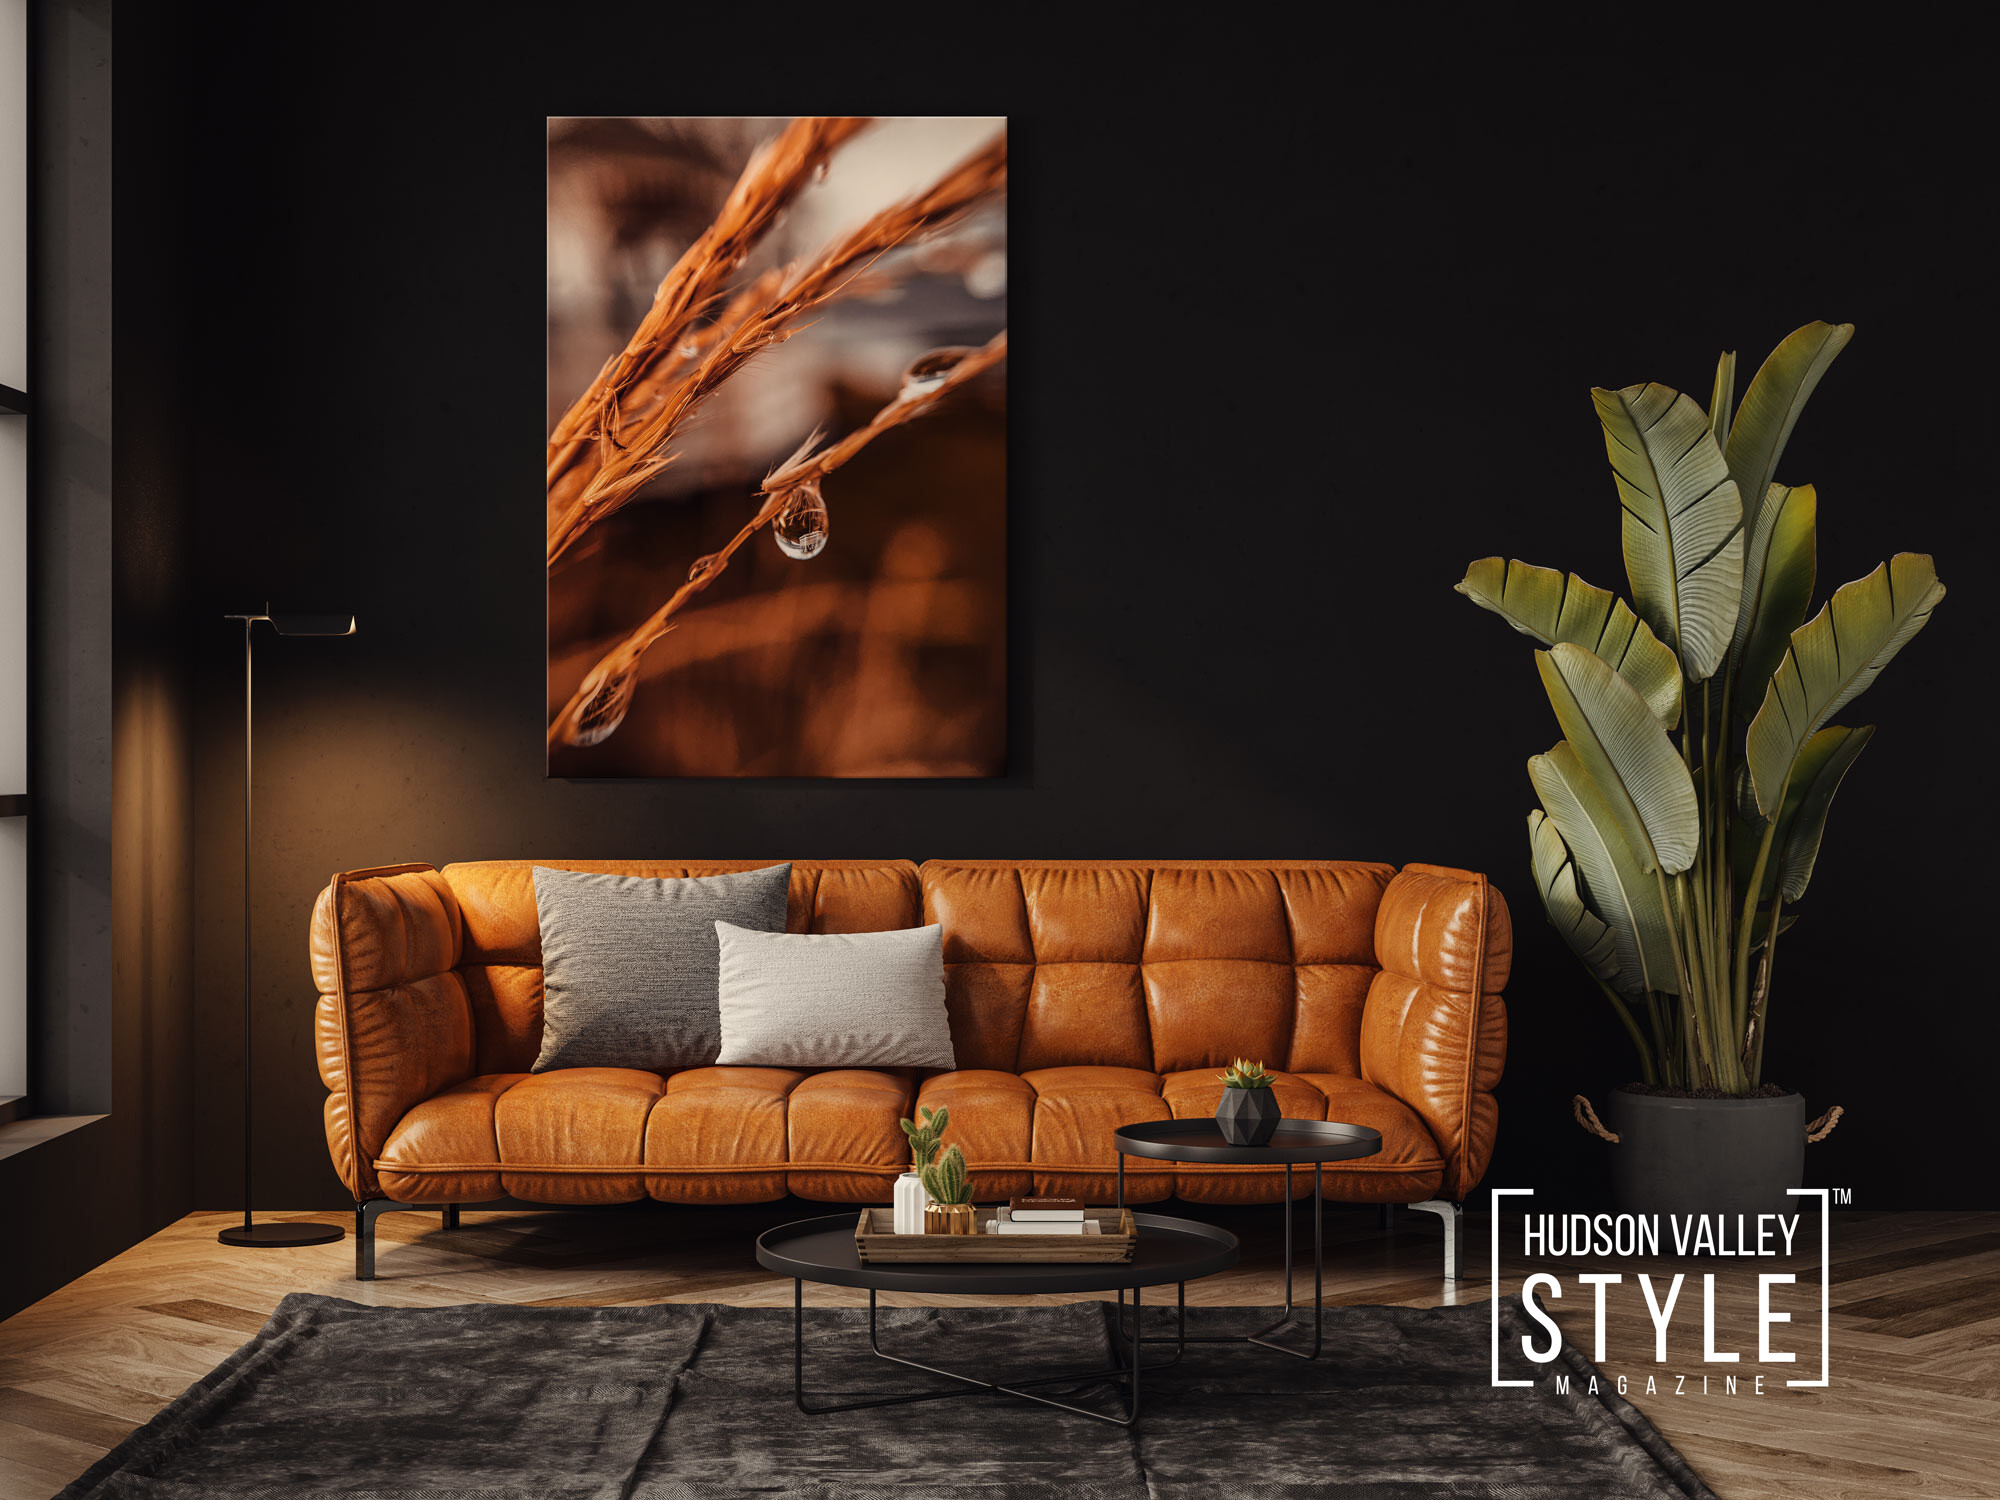 How to enhance your interior design with strategically placed wall decorations